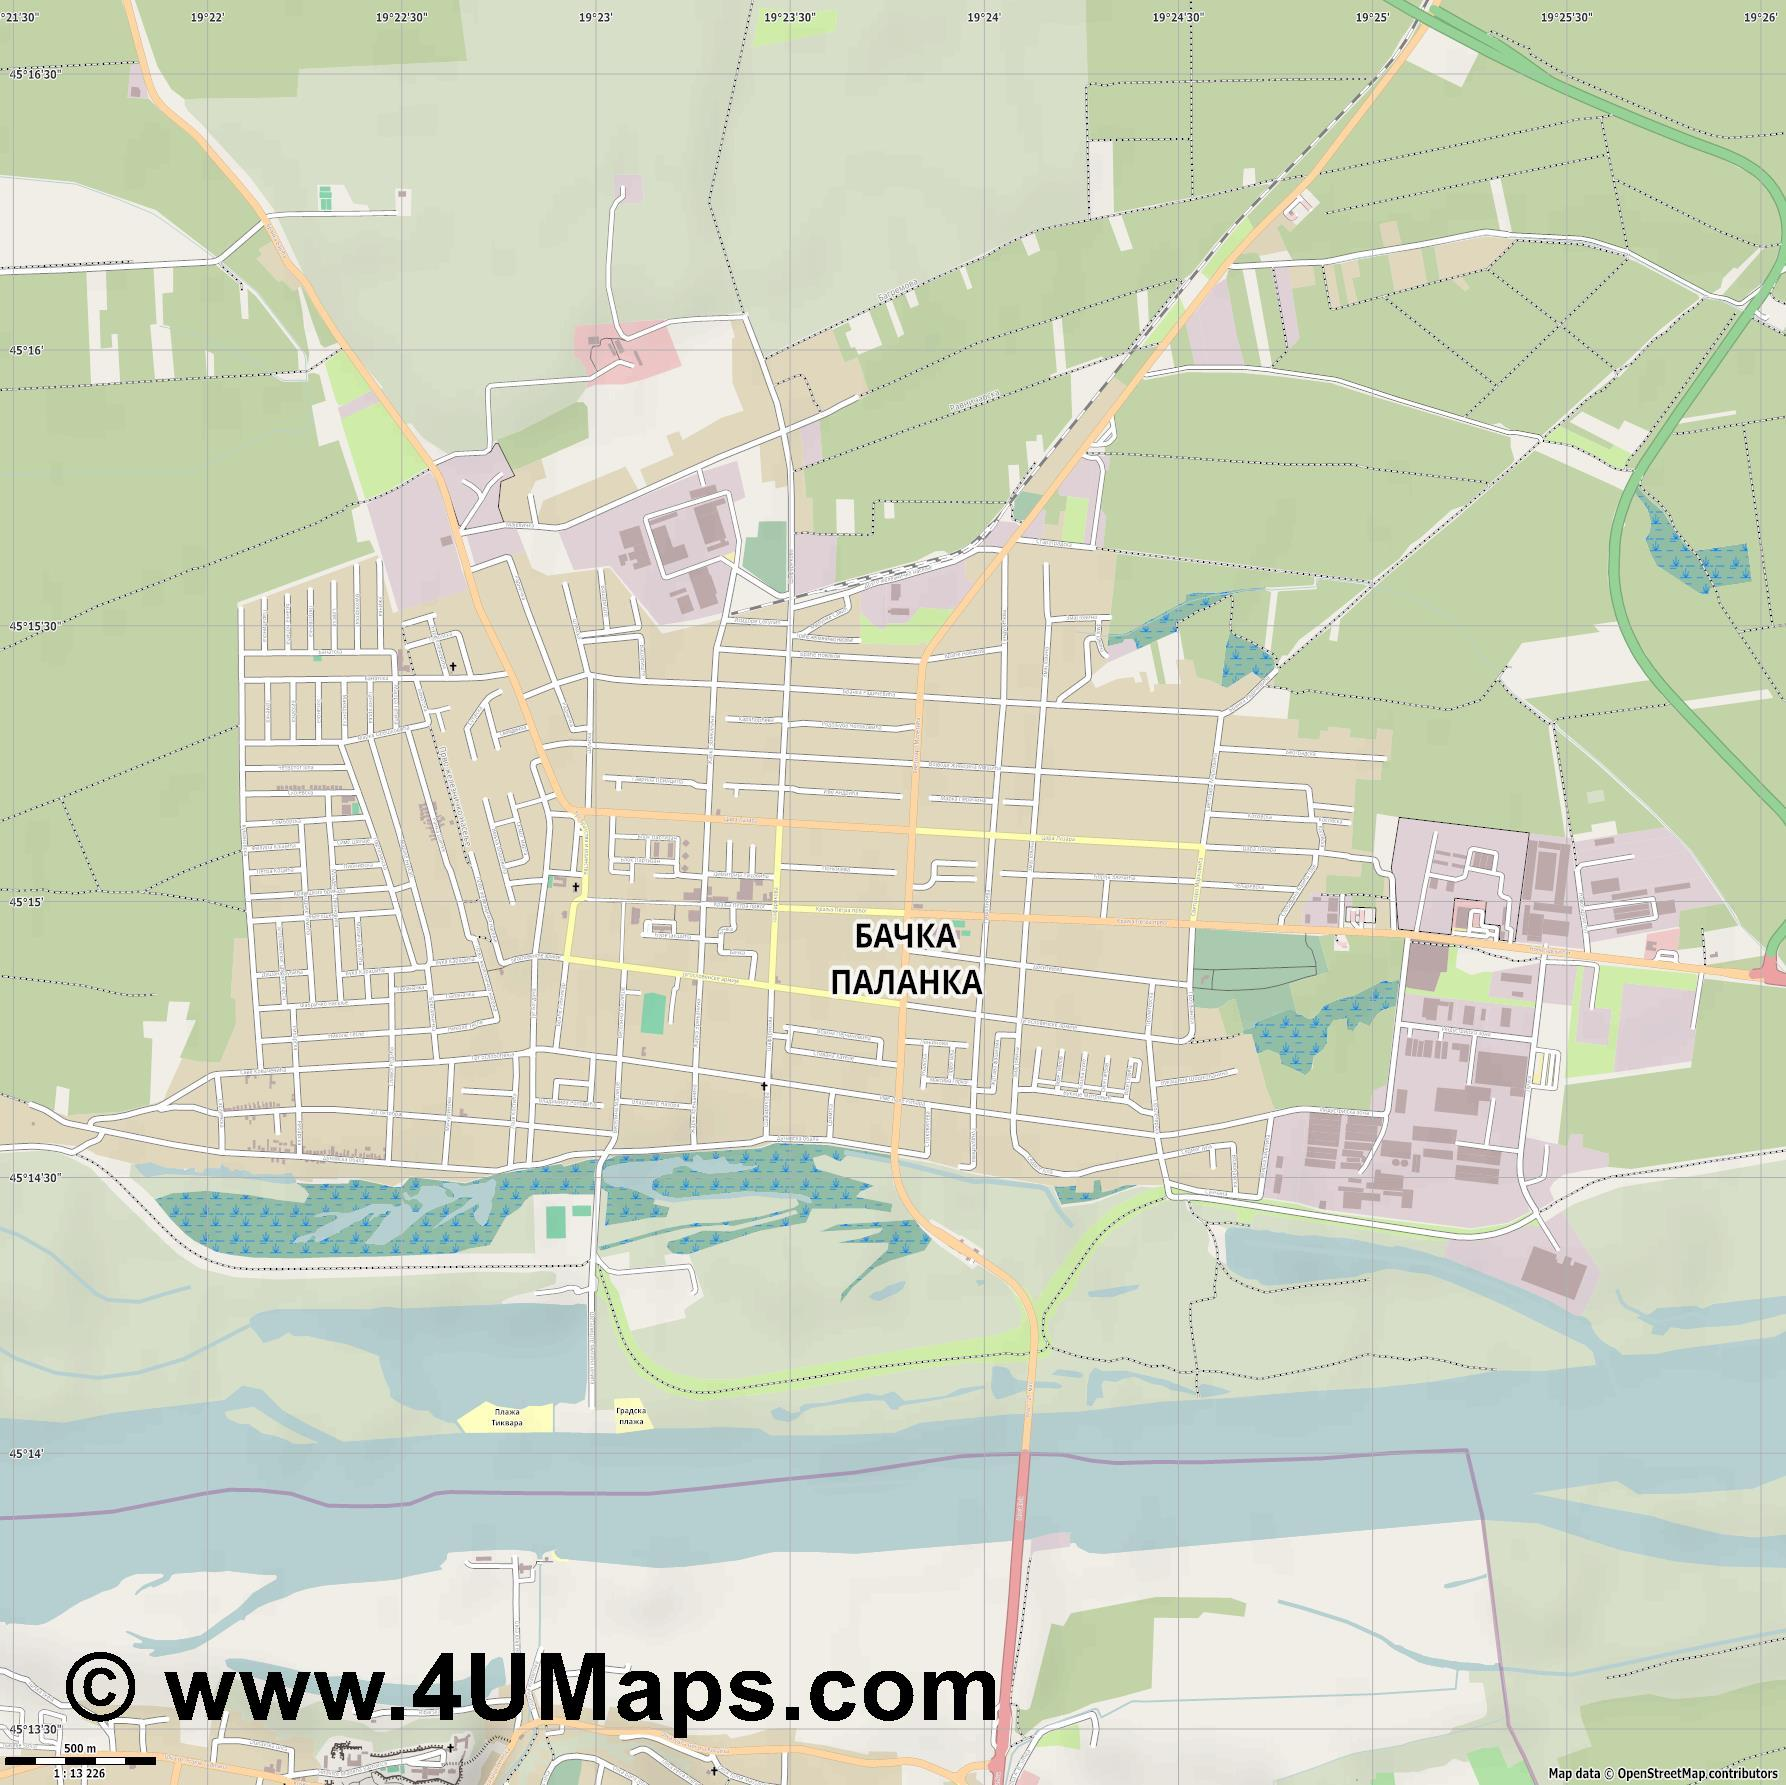 Бачка Паланка Backa Palanka Plankenburg  jpg ultra high detail preview vector city map